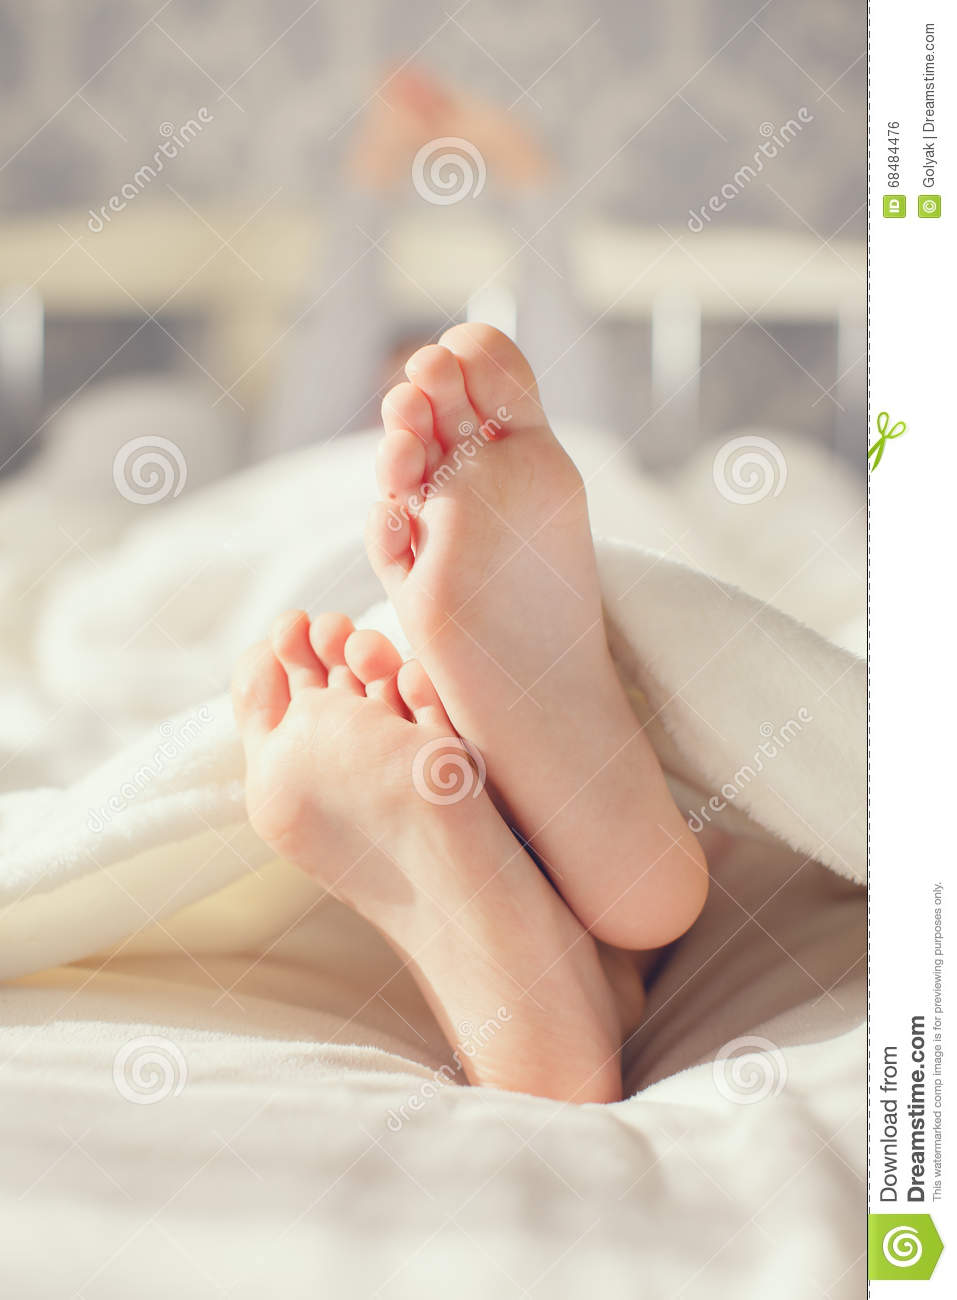 Baby Foot In White Blanket Stock Photo Image Of